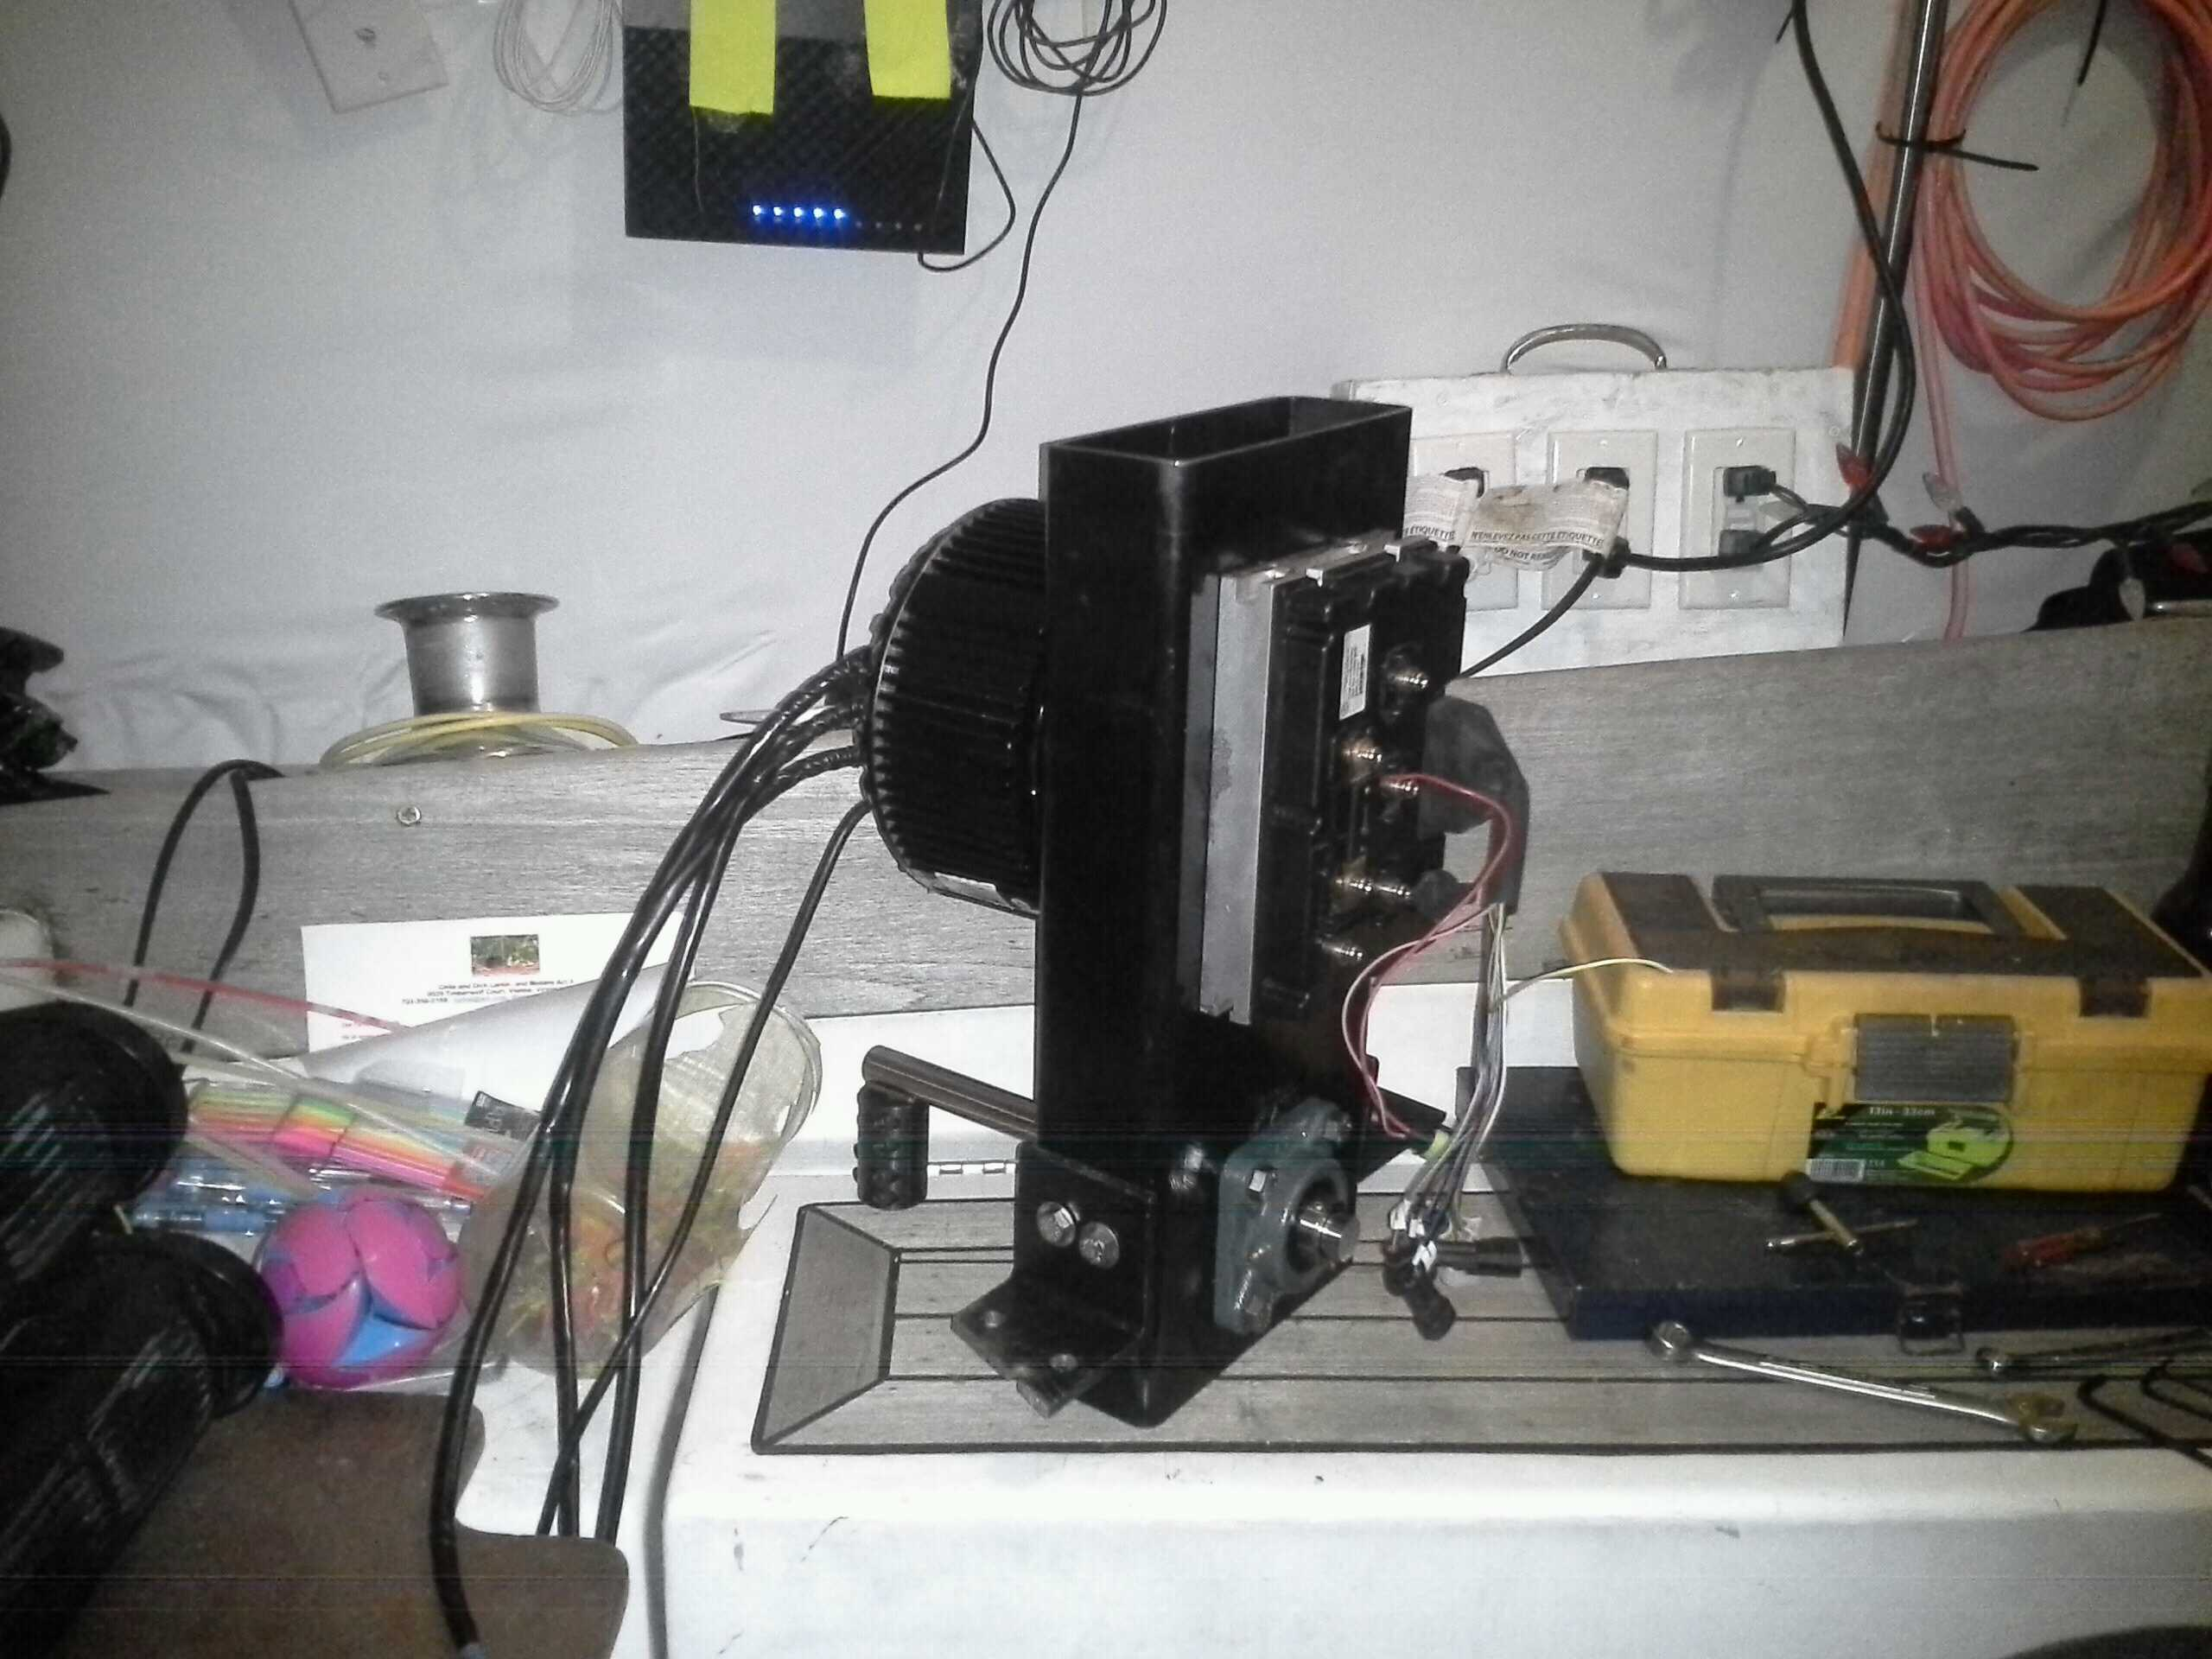 fully assembled motor, not connected or installed